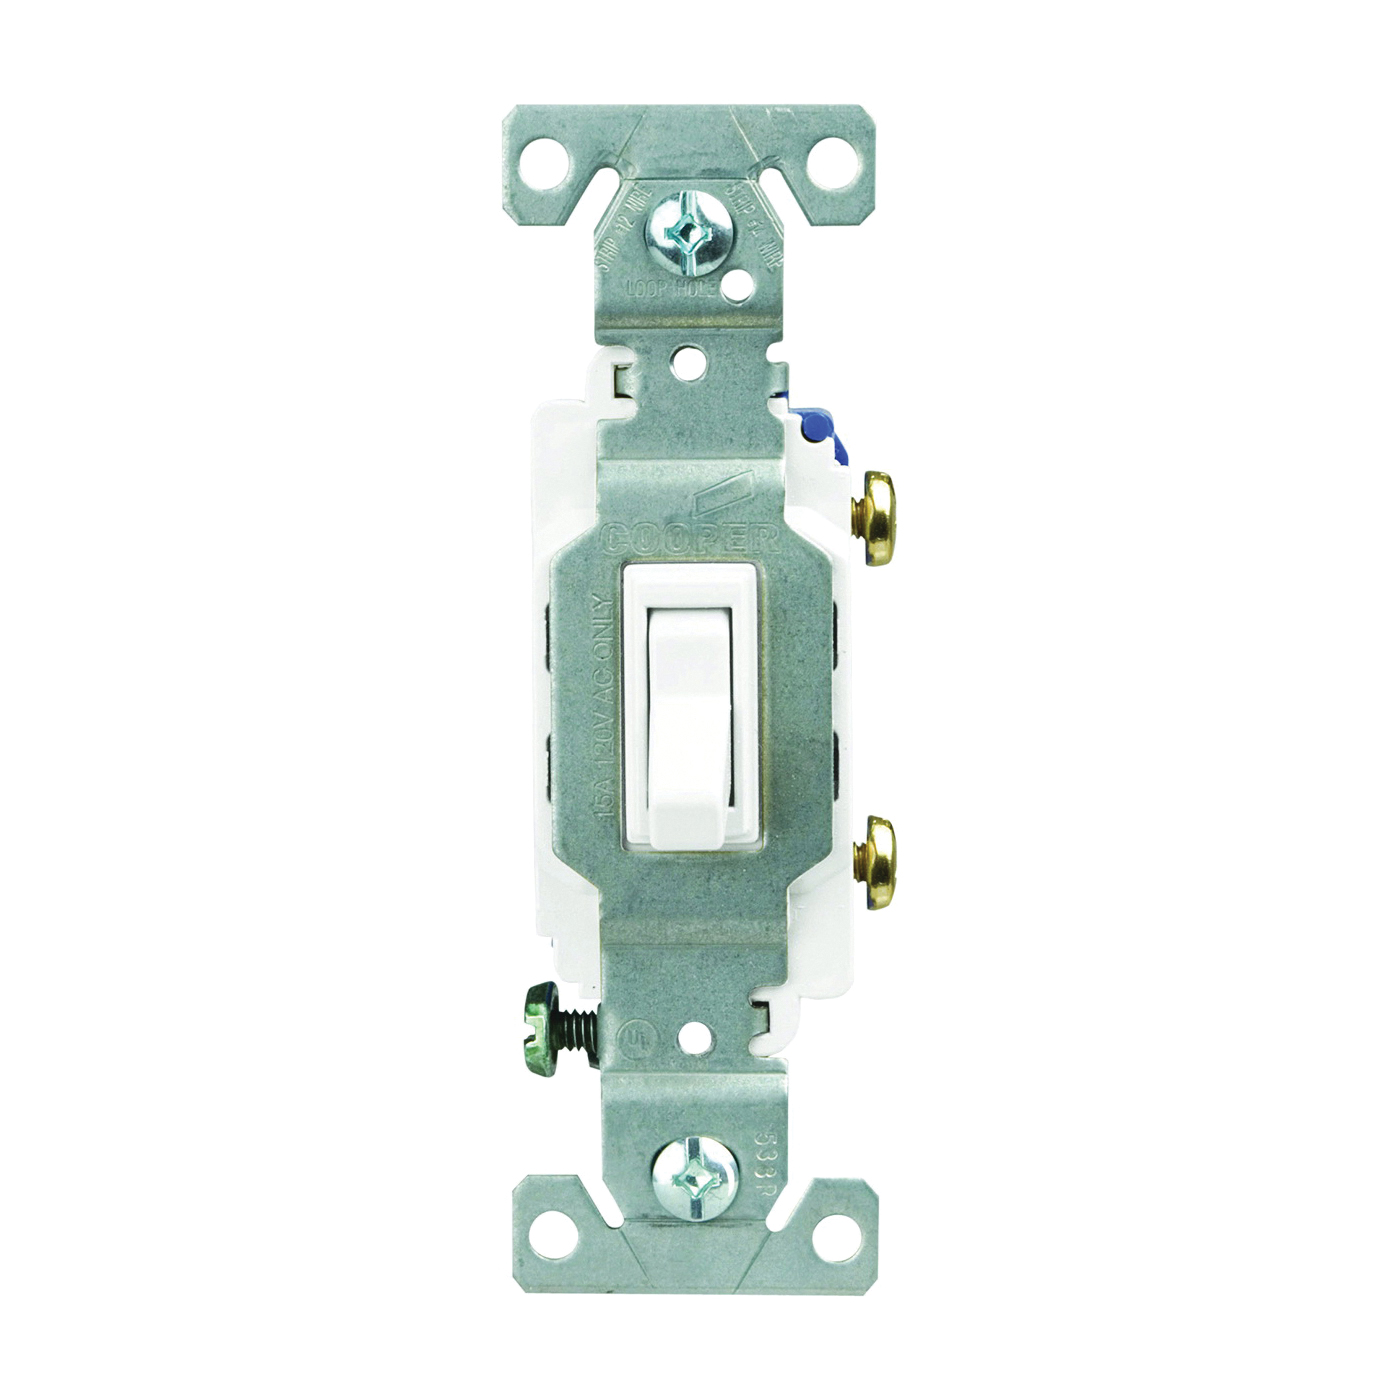 Picture of Eaton Wiring Devices C1301-7LTW Toggle Switch, 15 A, 120 V, Polycarbonate Housing Material, White